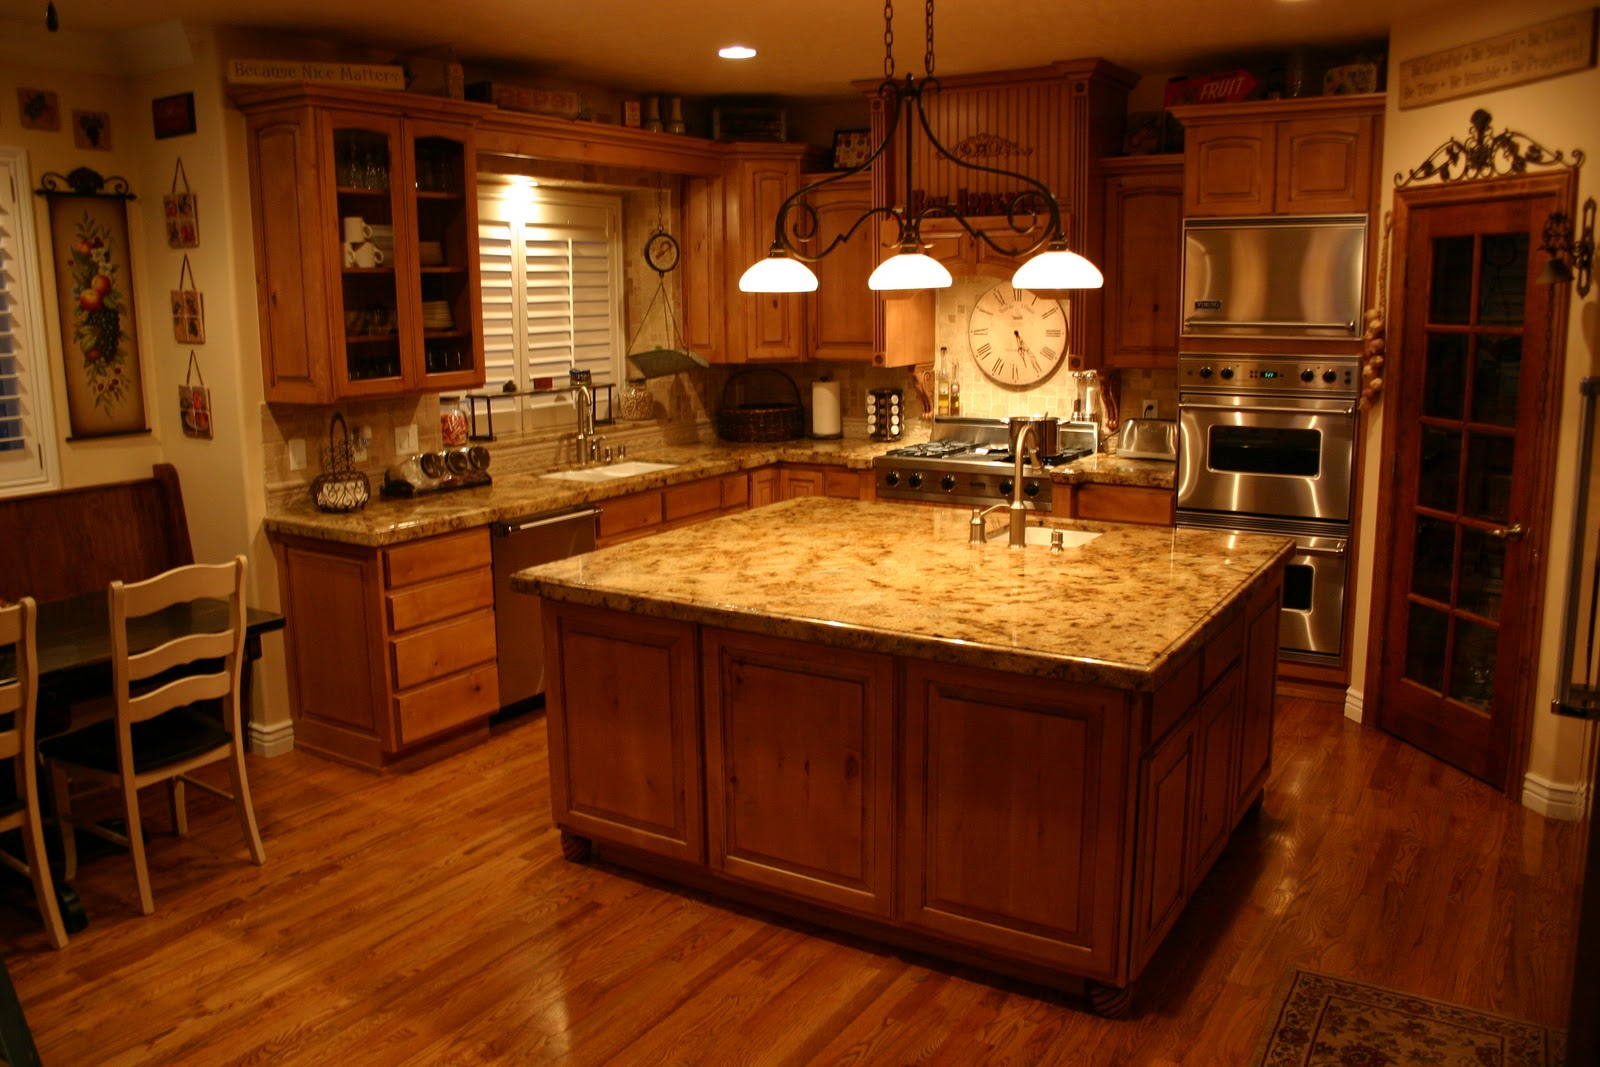 Granite Countertop For Kitchen : The Granite Gurus: Lapidus granite Kitchen